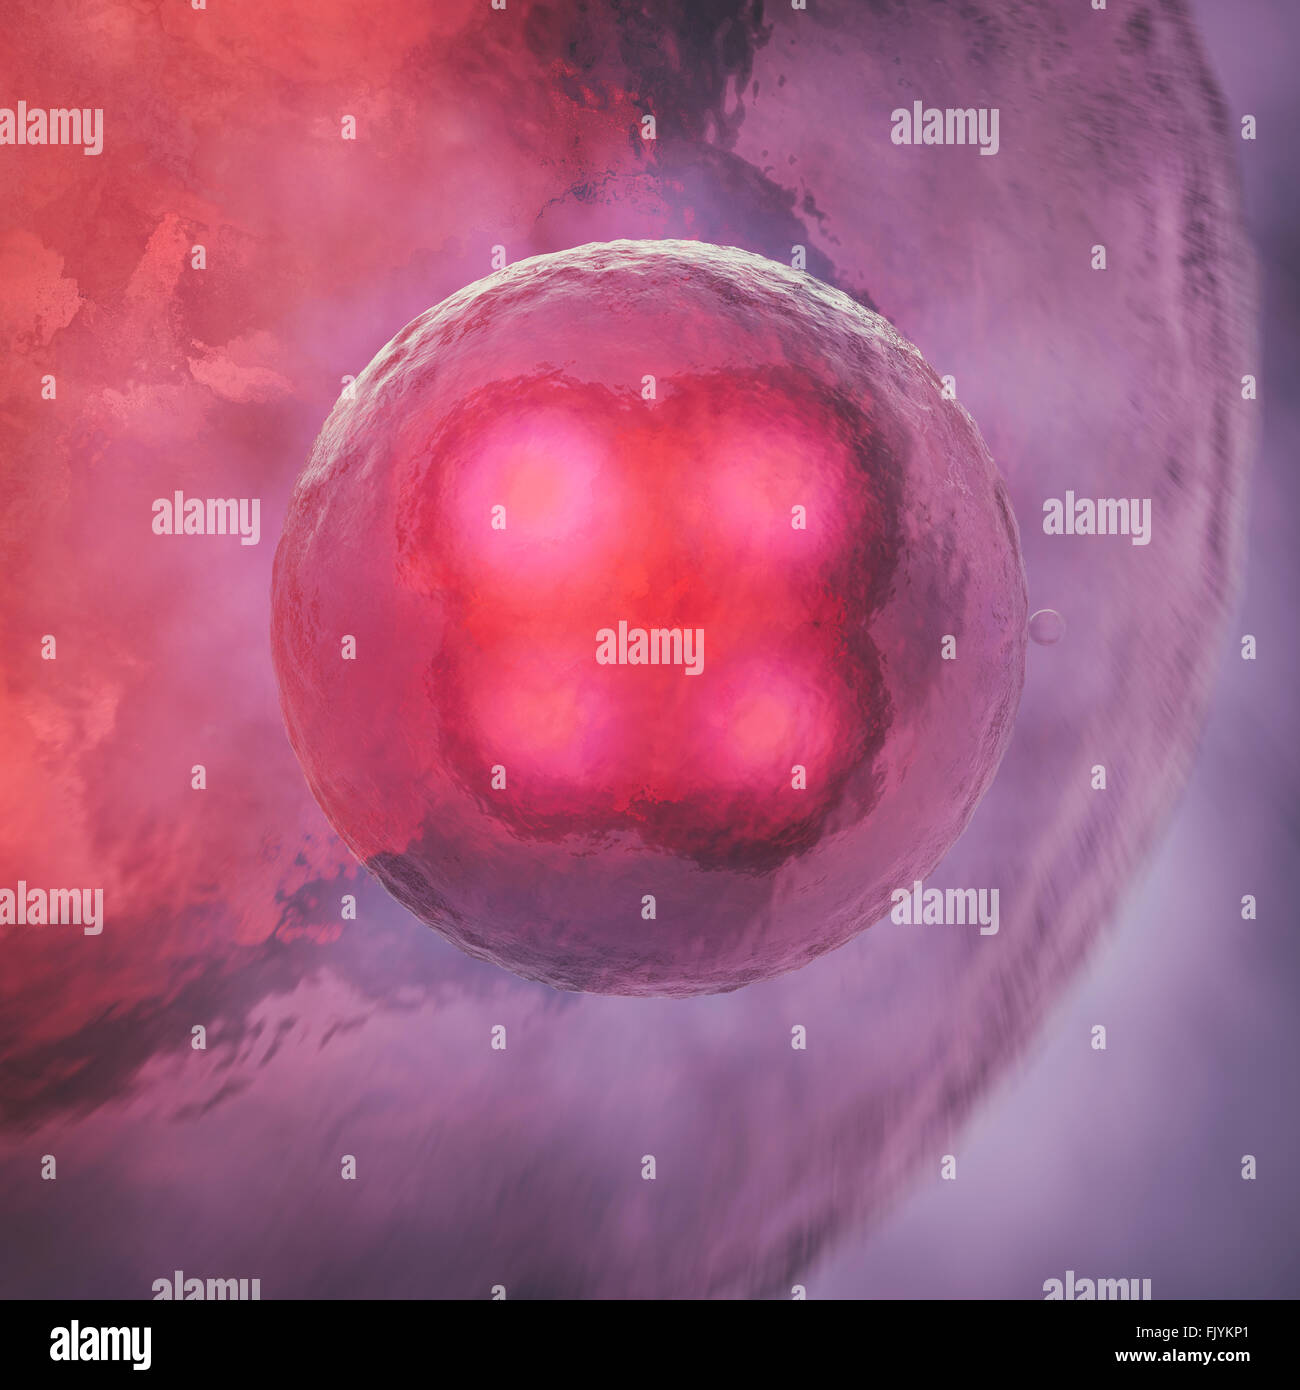 Cell division - Stock Image